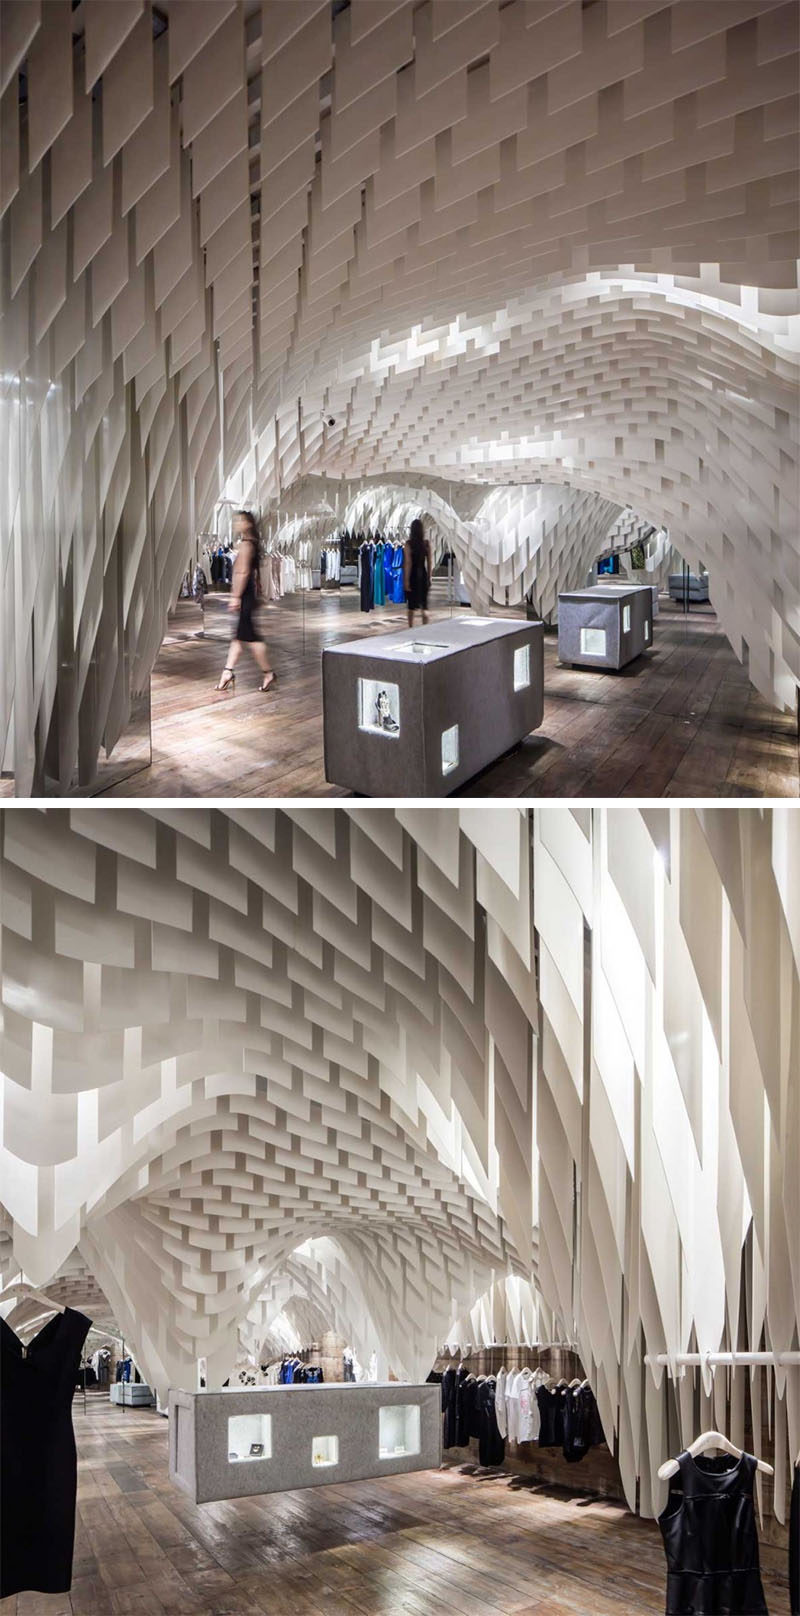 13 Amazing Examples Of Creative Sculptural Ceilings // More than 10,000 strips of a very thin white translucent fiberglass material was used to create a unique look for this clothing store.